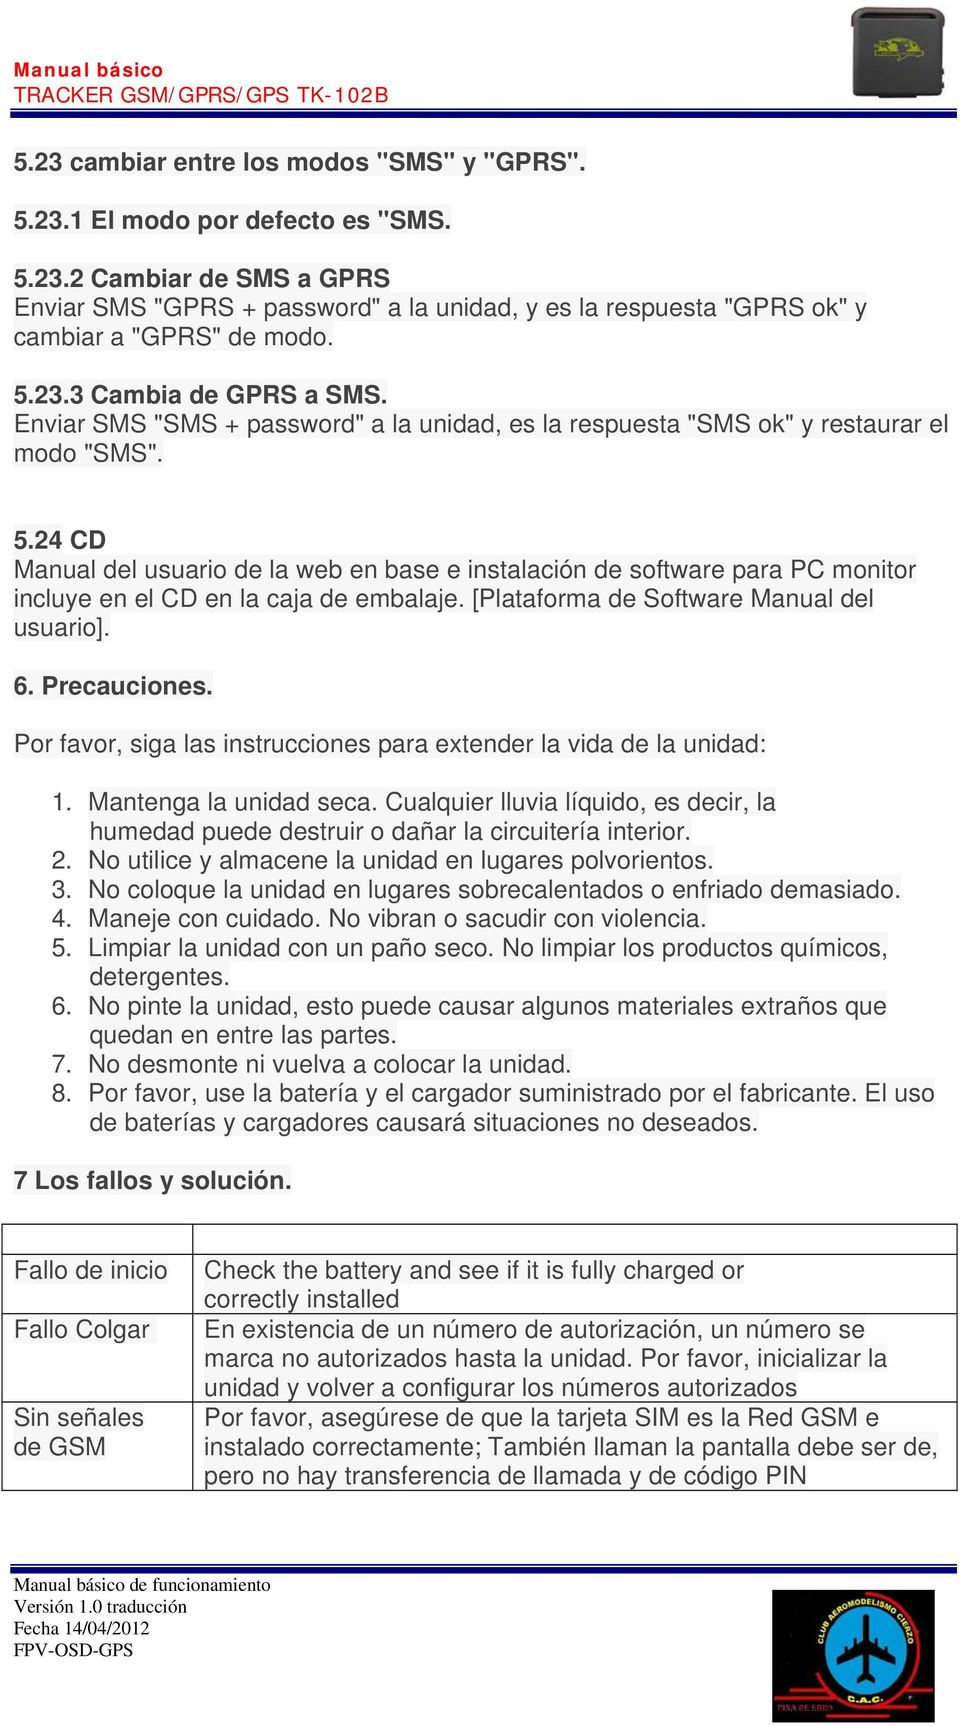 24 CD Manual del usuario de la web en base e instalación de software para PC monitor incluye en el CD en la caja de embalaje. [Plataforma de Software Manual del usuario]. 6. Precauciones.